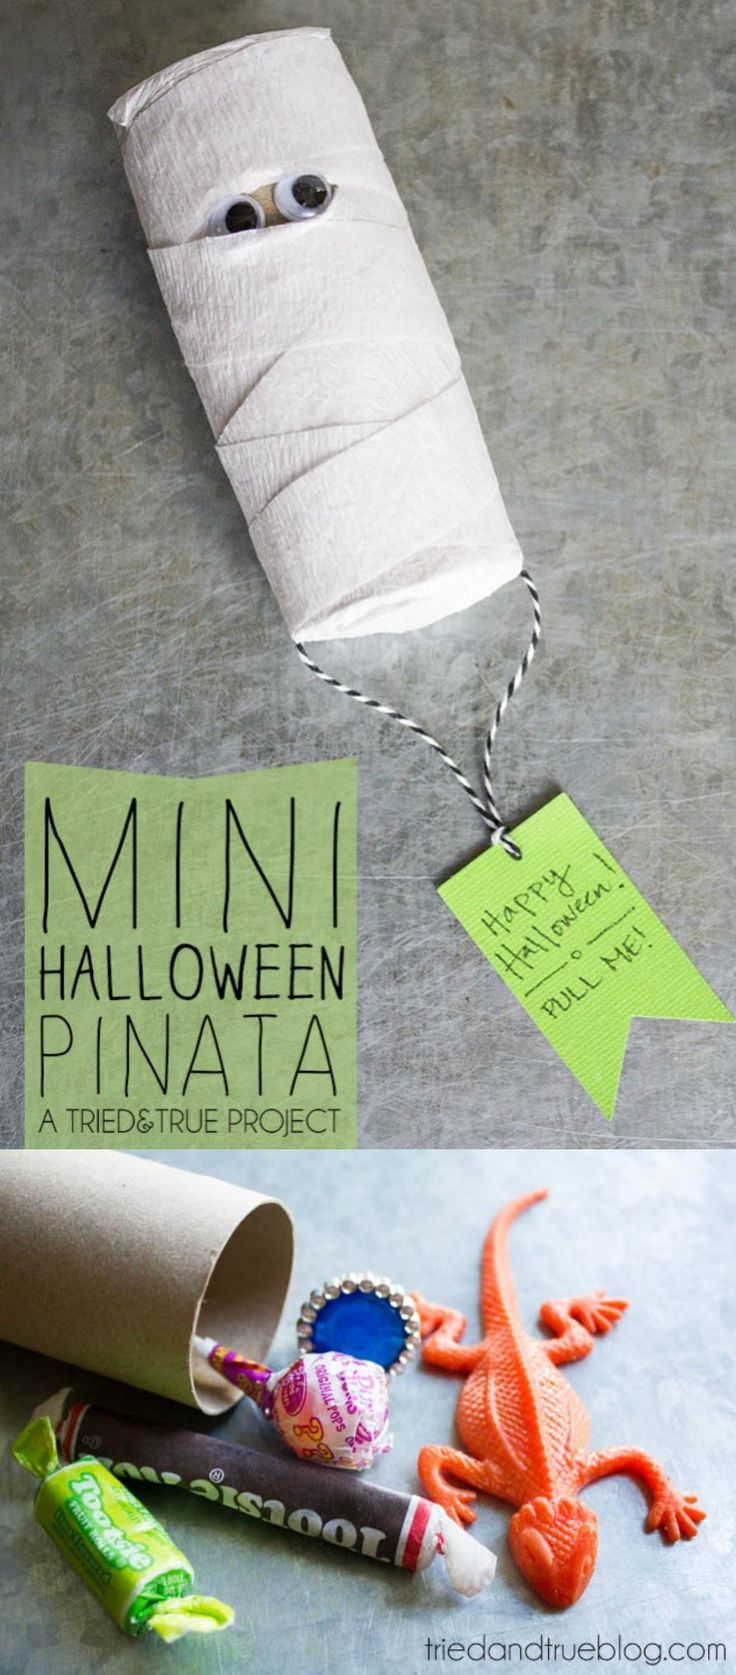 Use a toilet paper roll and some crepe paper to make the cutest DIY Halloween mini pinata ever. You'll love finding out what's inside!